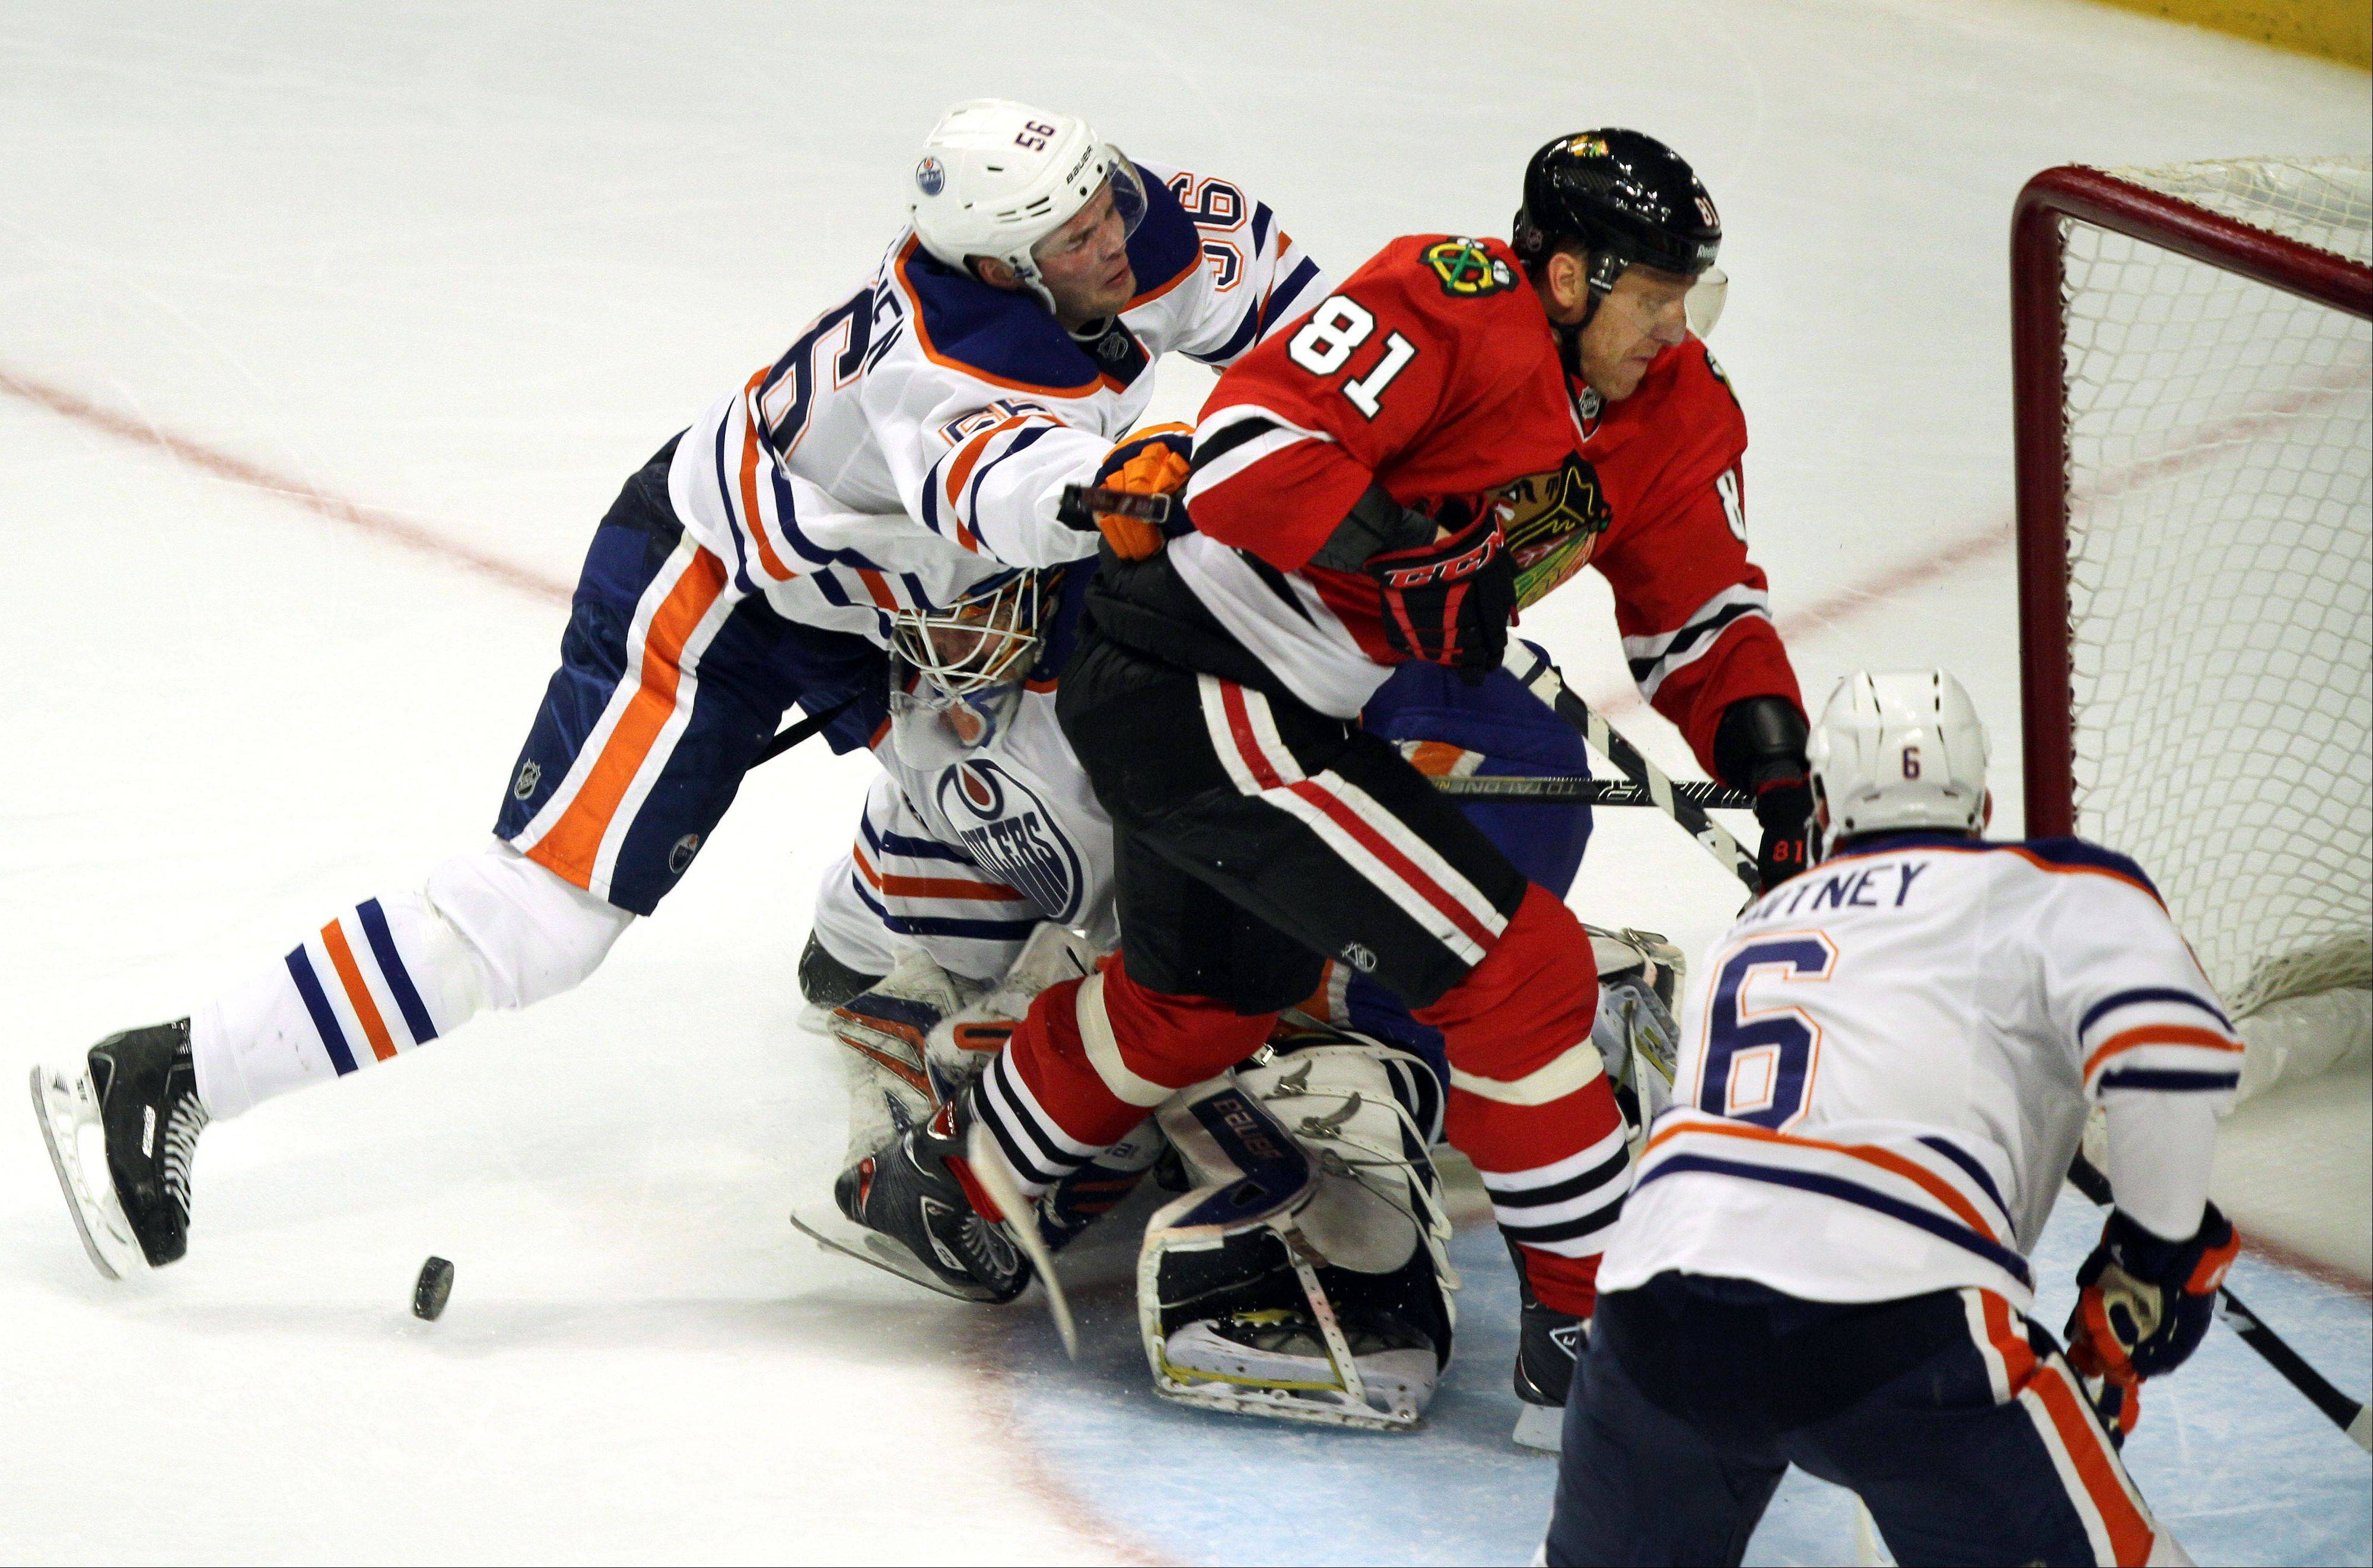 Chicago Blackhawks right wing Marian Hossa runs into Edmonton Oilers goalie Devan Dubnyk during their game Sunday night at the United Center in Chicago.